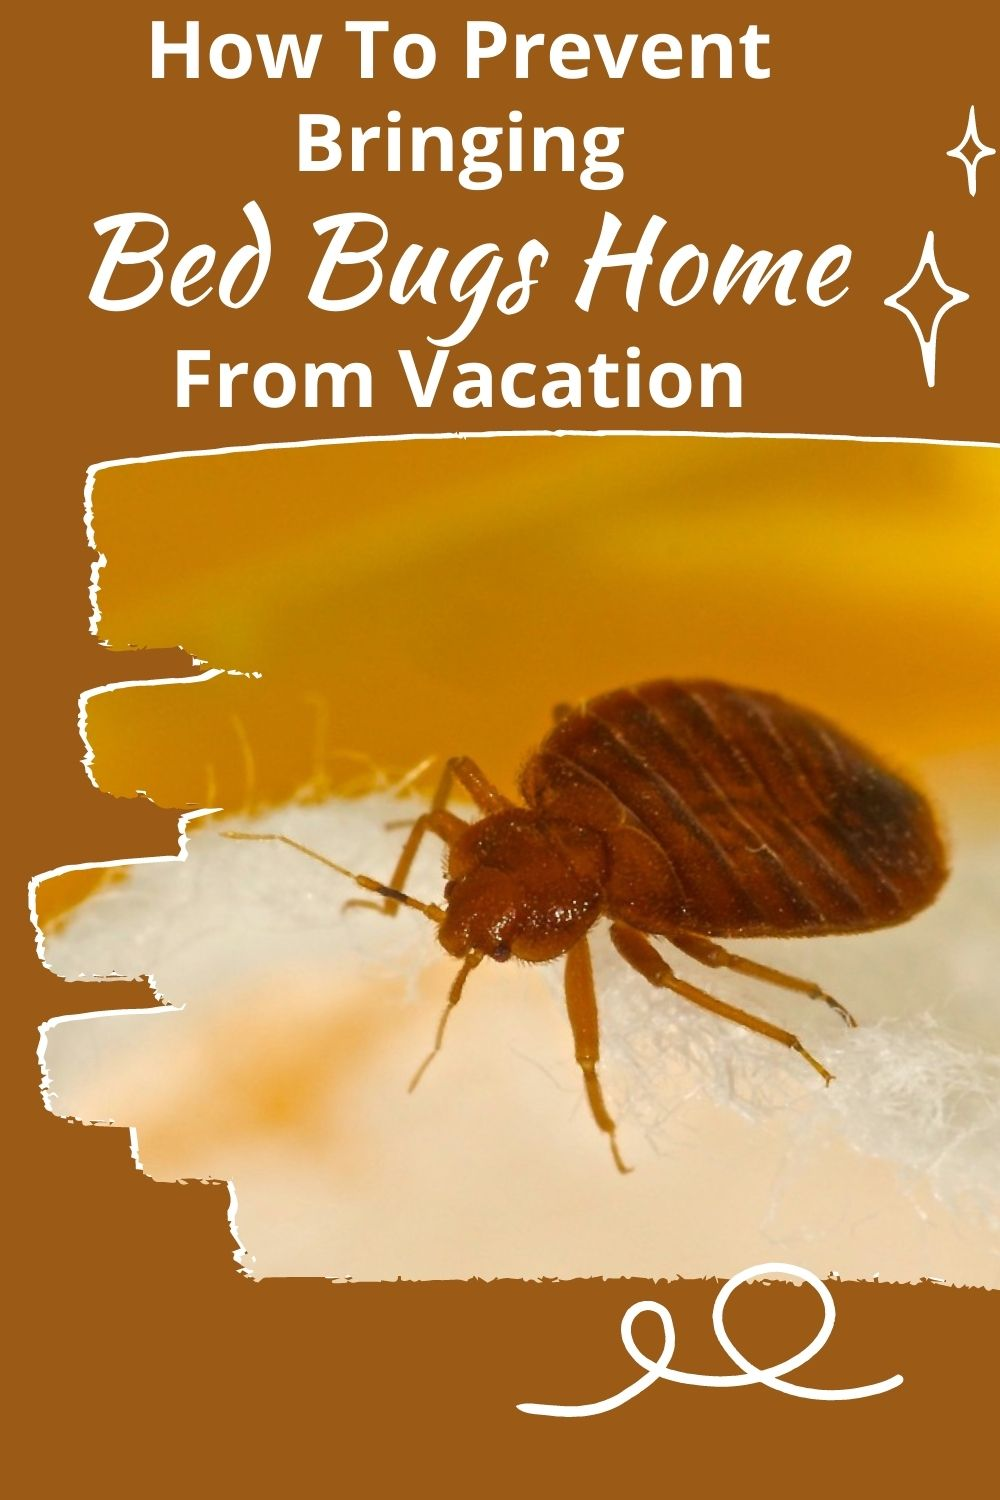 How To Prevent Bringing Bed Bugs Home From Vacation